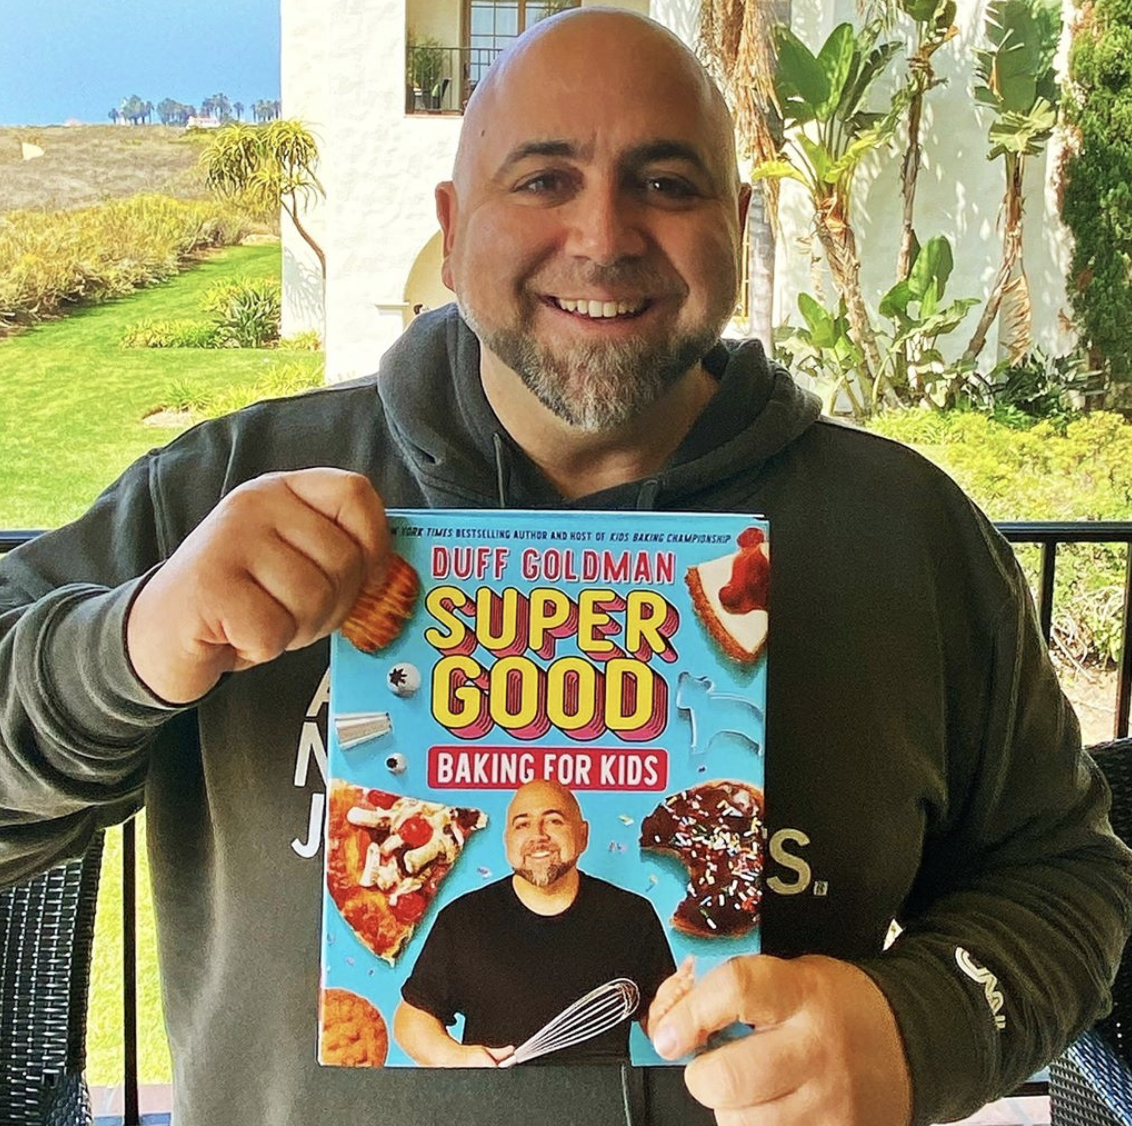 Duff Goldman promoting his cooking book Super Good Baking for Kids